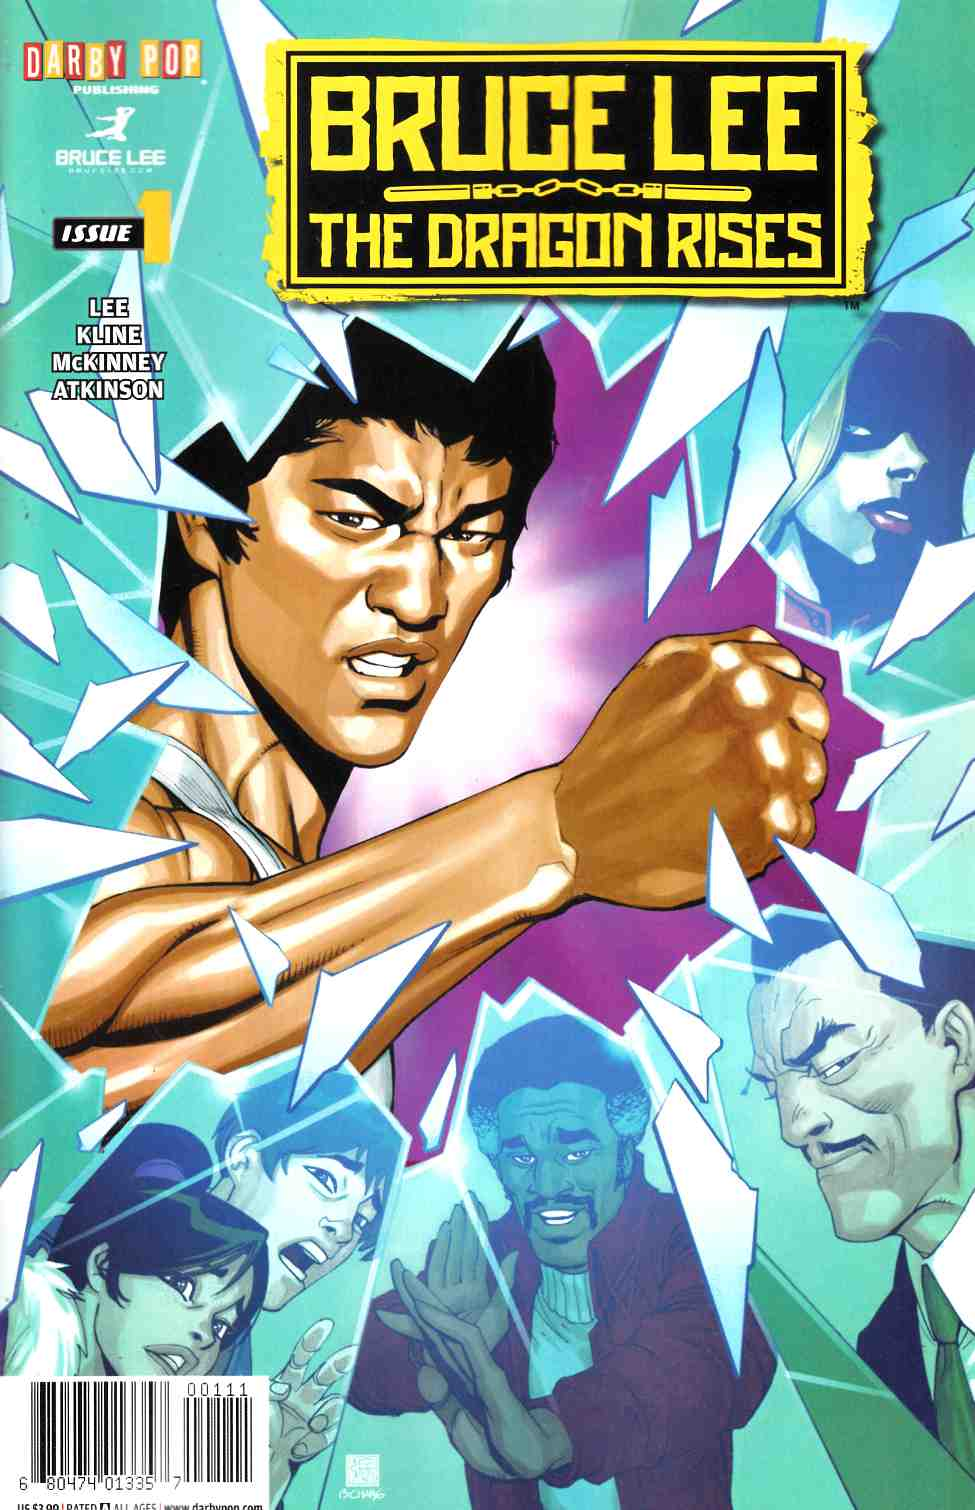 Bruce Lee Dragon Rises #1 Cover A [IDW Comic]